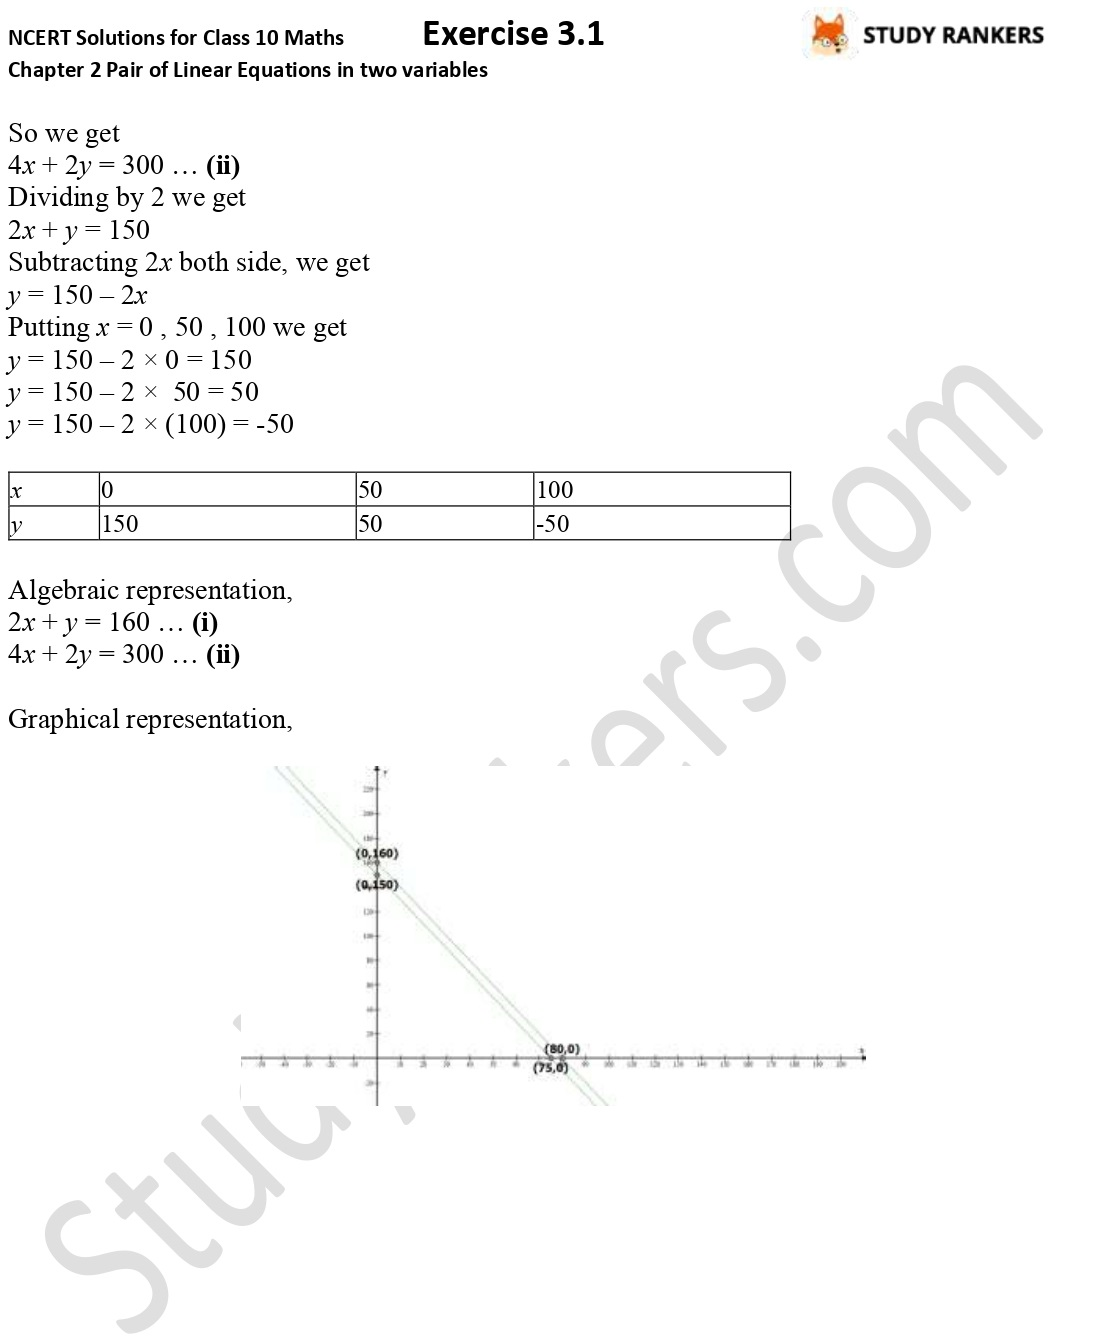 NCERT Solutions for Class 10 Maths Chapter 3 Pair of Linear Equations in Two Variables Exercise 3.1 Part 4